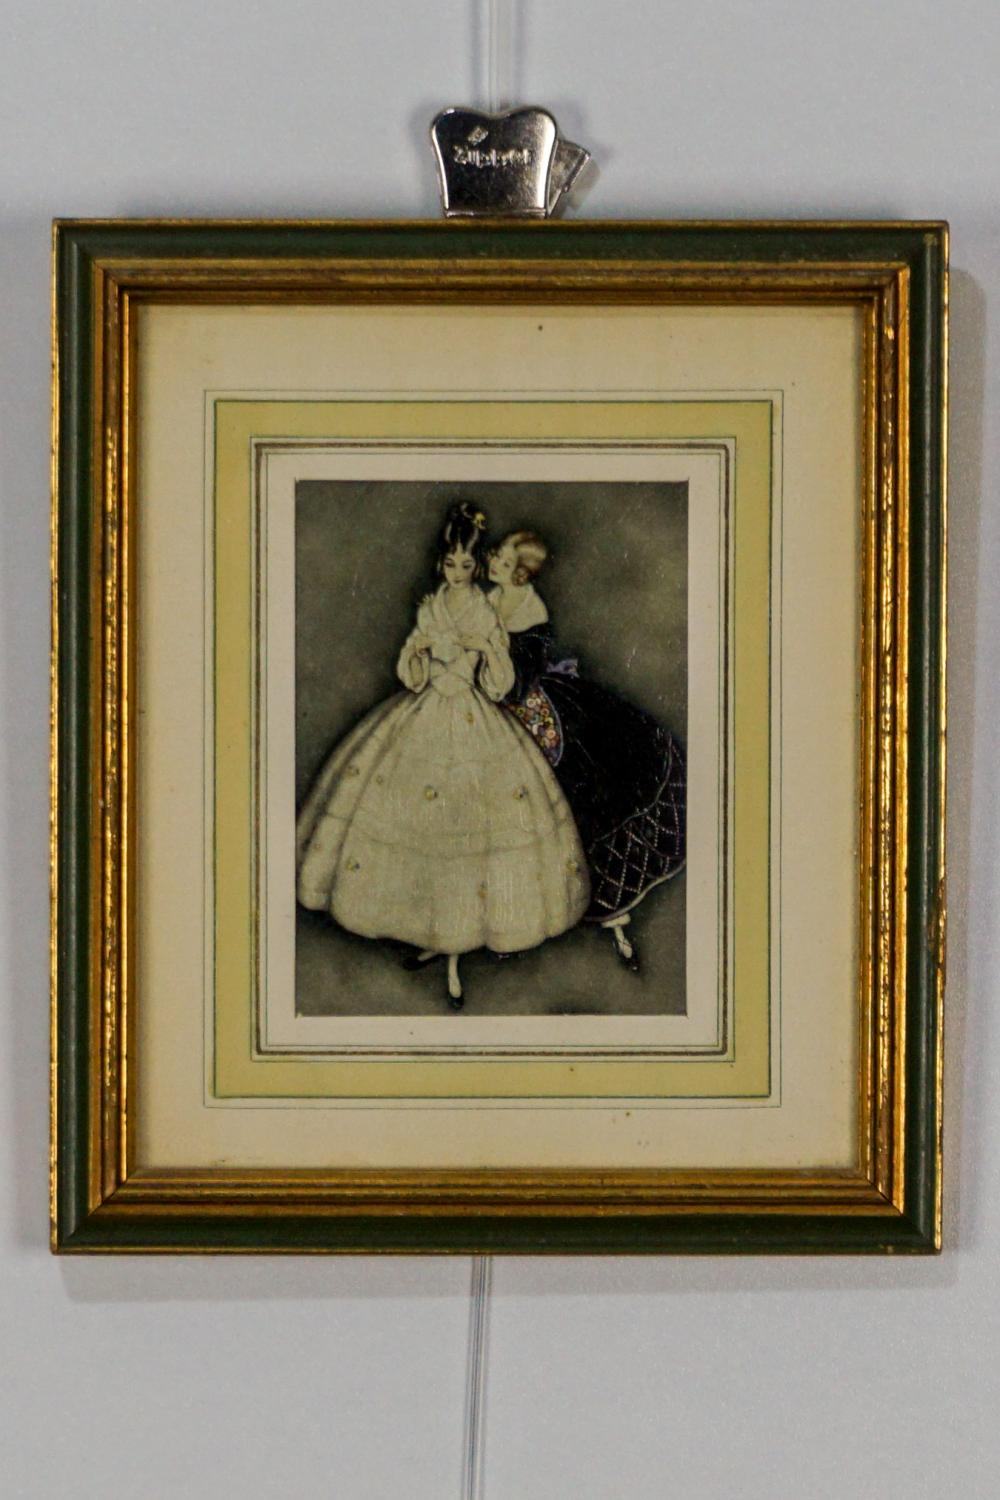 Two Framed Textured Prints of Women